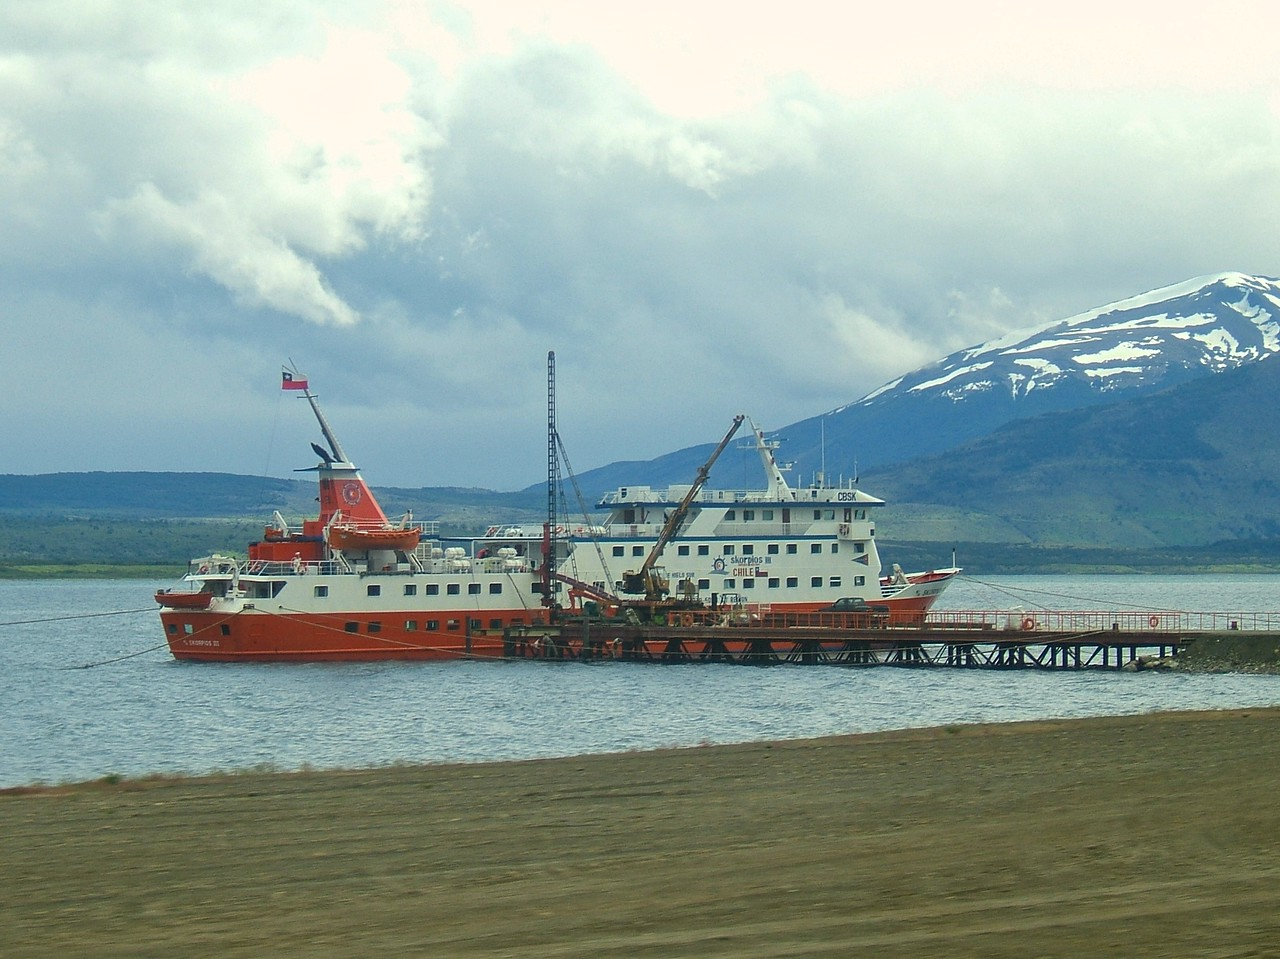 Puerto Natales is a city of 20,000 located along the route to Explora.